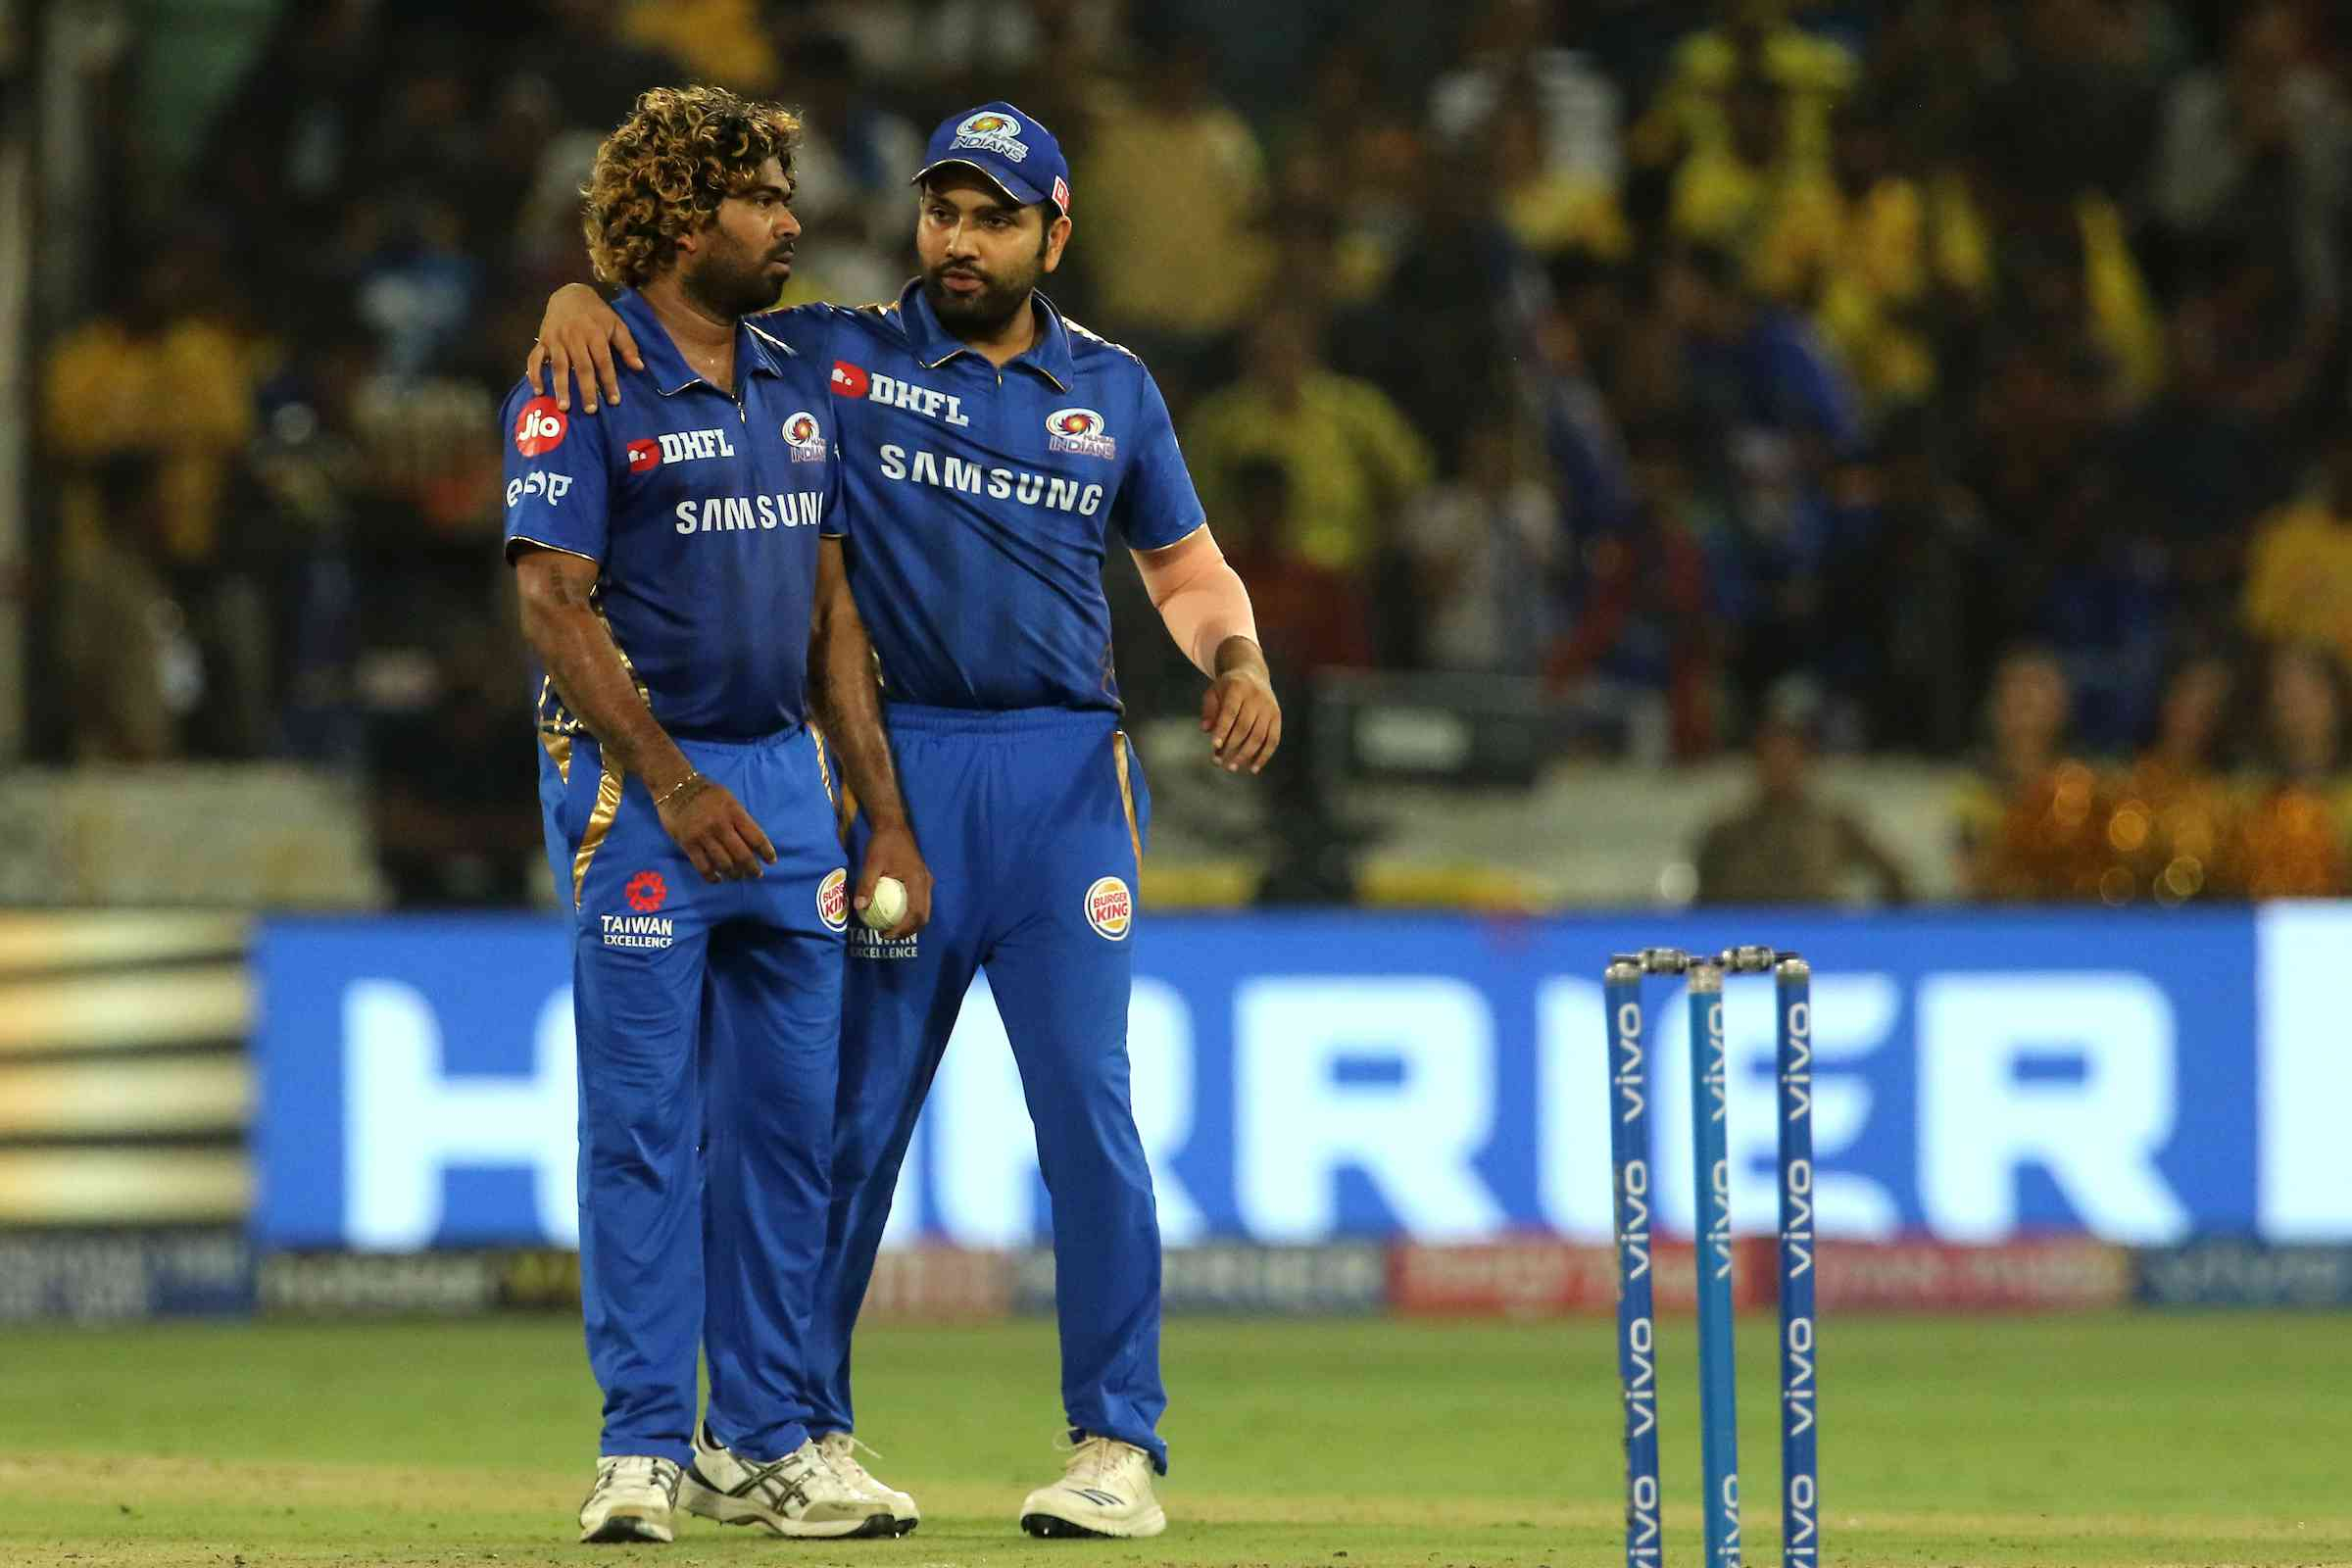 Rohit Sharma lends his support to Lasith Malinga on Sunday – Vipin Pawar / Sportzpics for BCCI